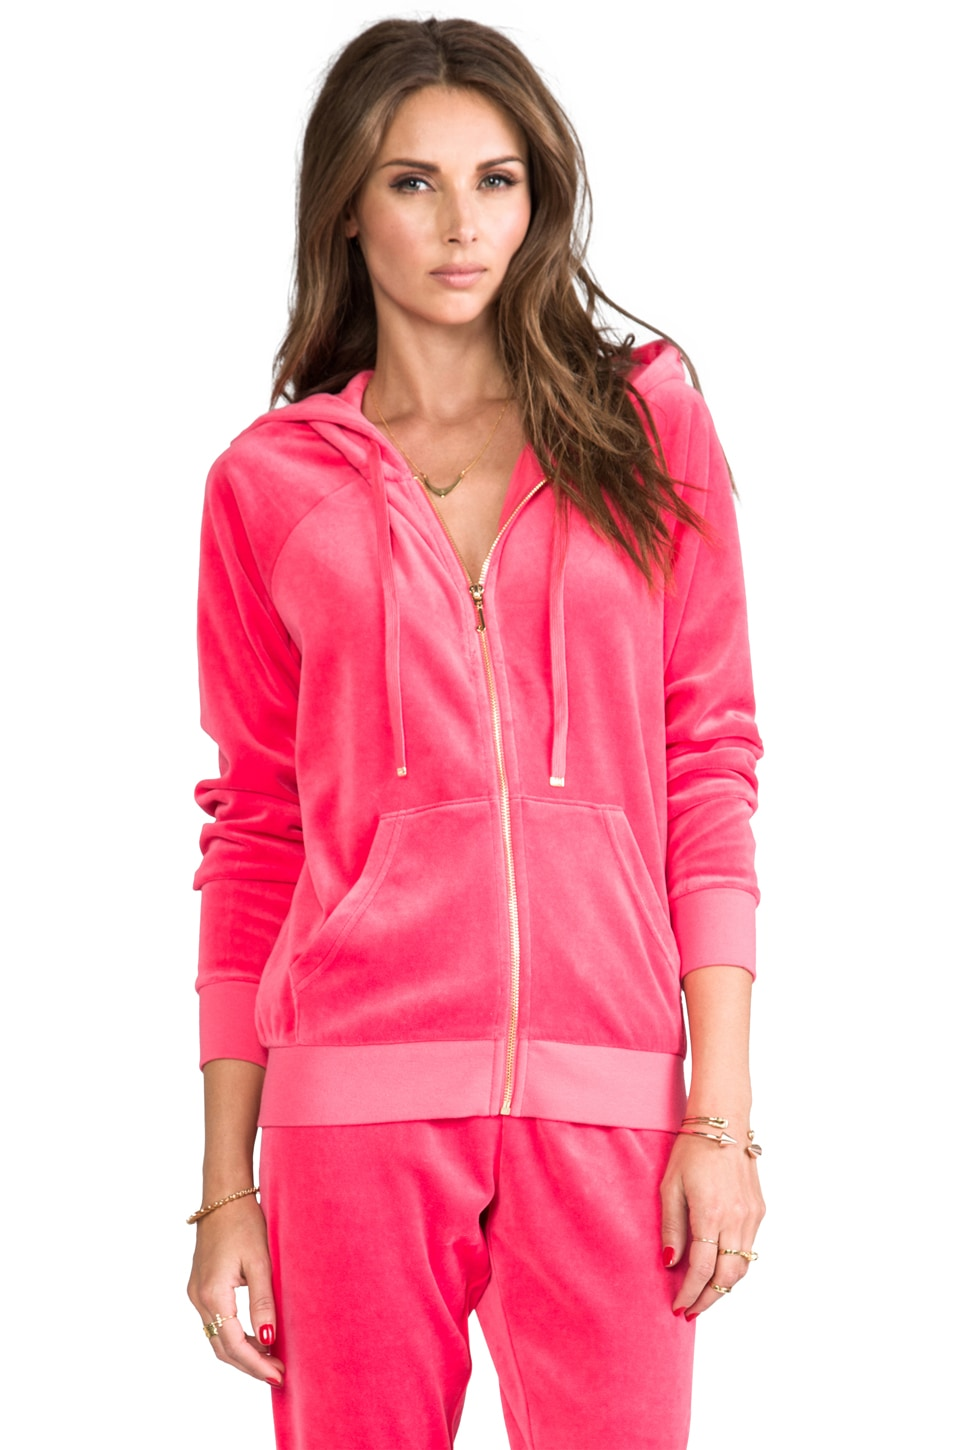 Juicy Couture J Bling Relaxed Hoodie in Top Hat